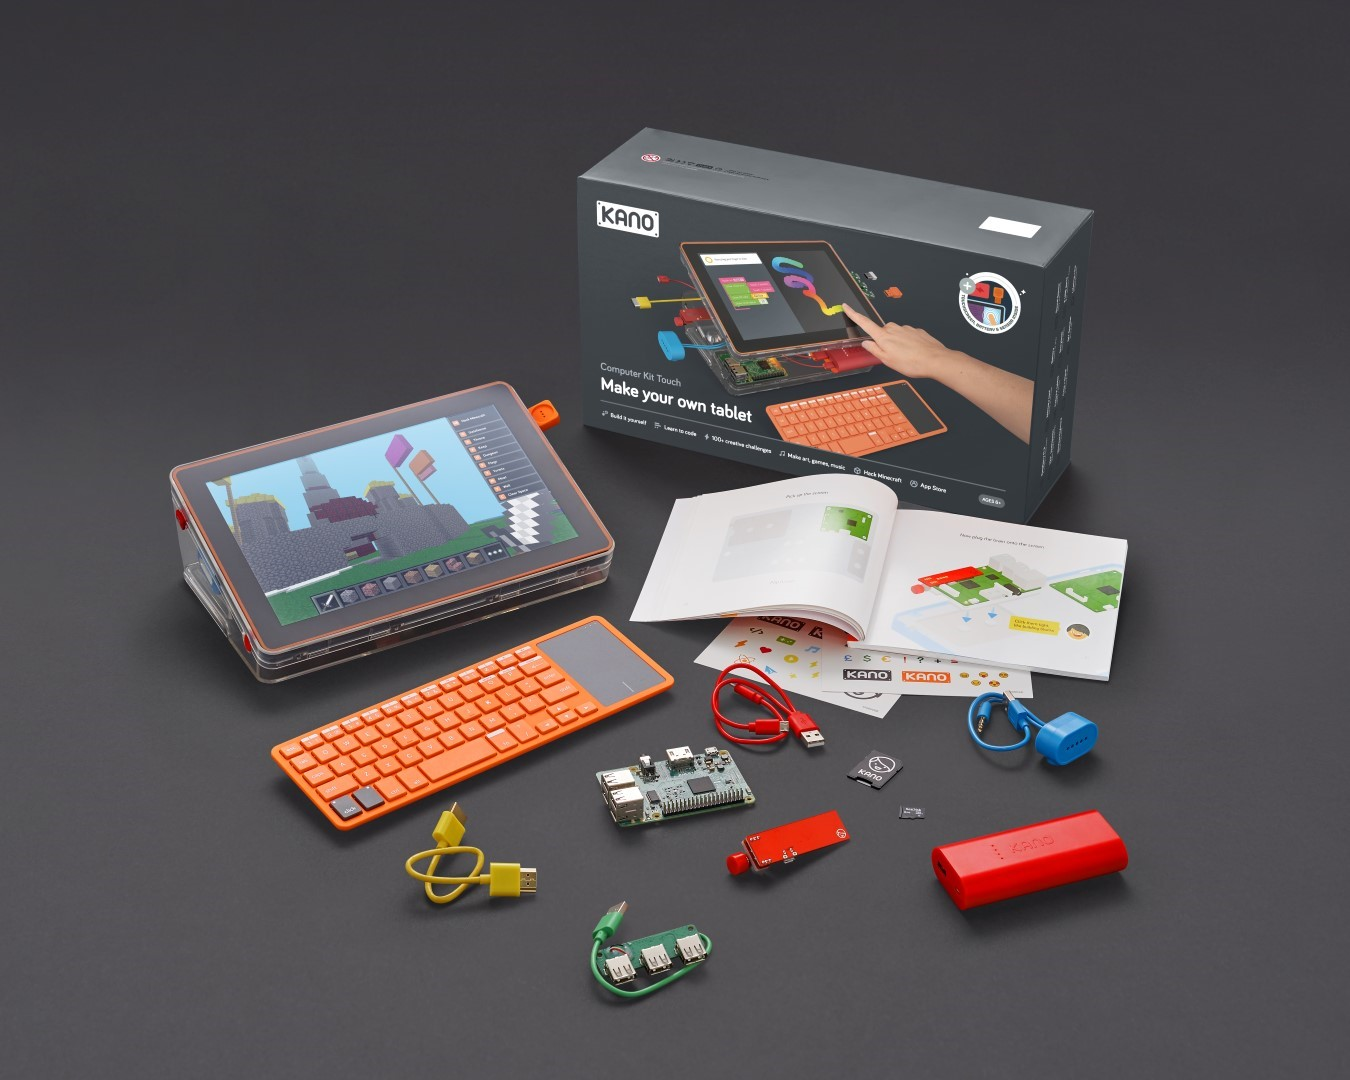 MAKE YOUR OWN LAPTOP. KANO COMPUTER KIT COMPLETE